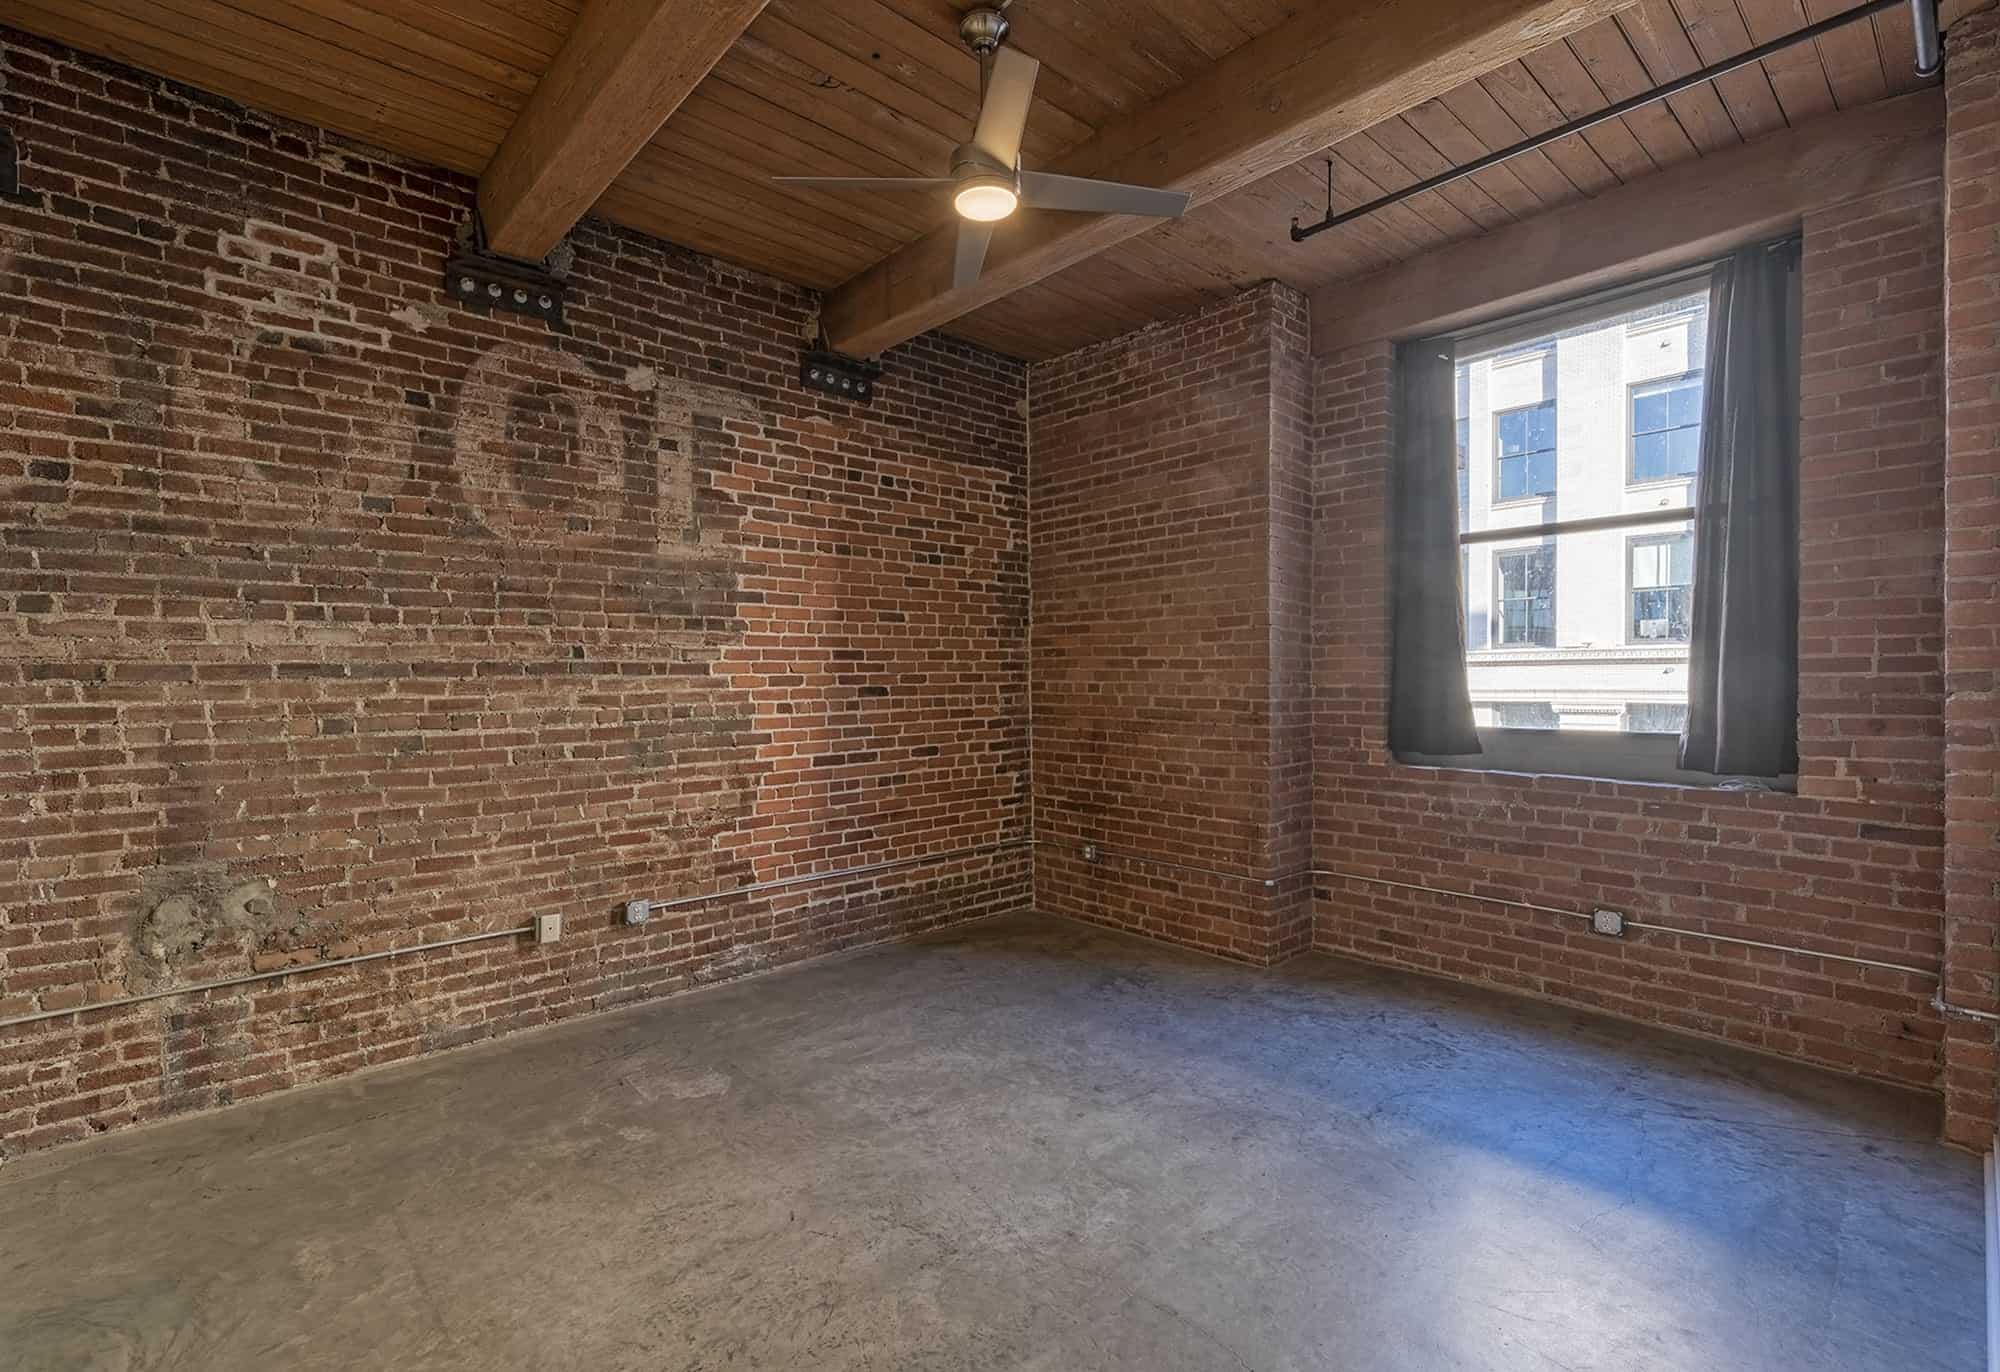 Personality Galore: The Brick Walls of Lofts in Kansas City Offer Lots of Potential